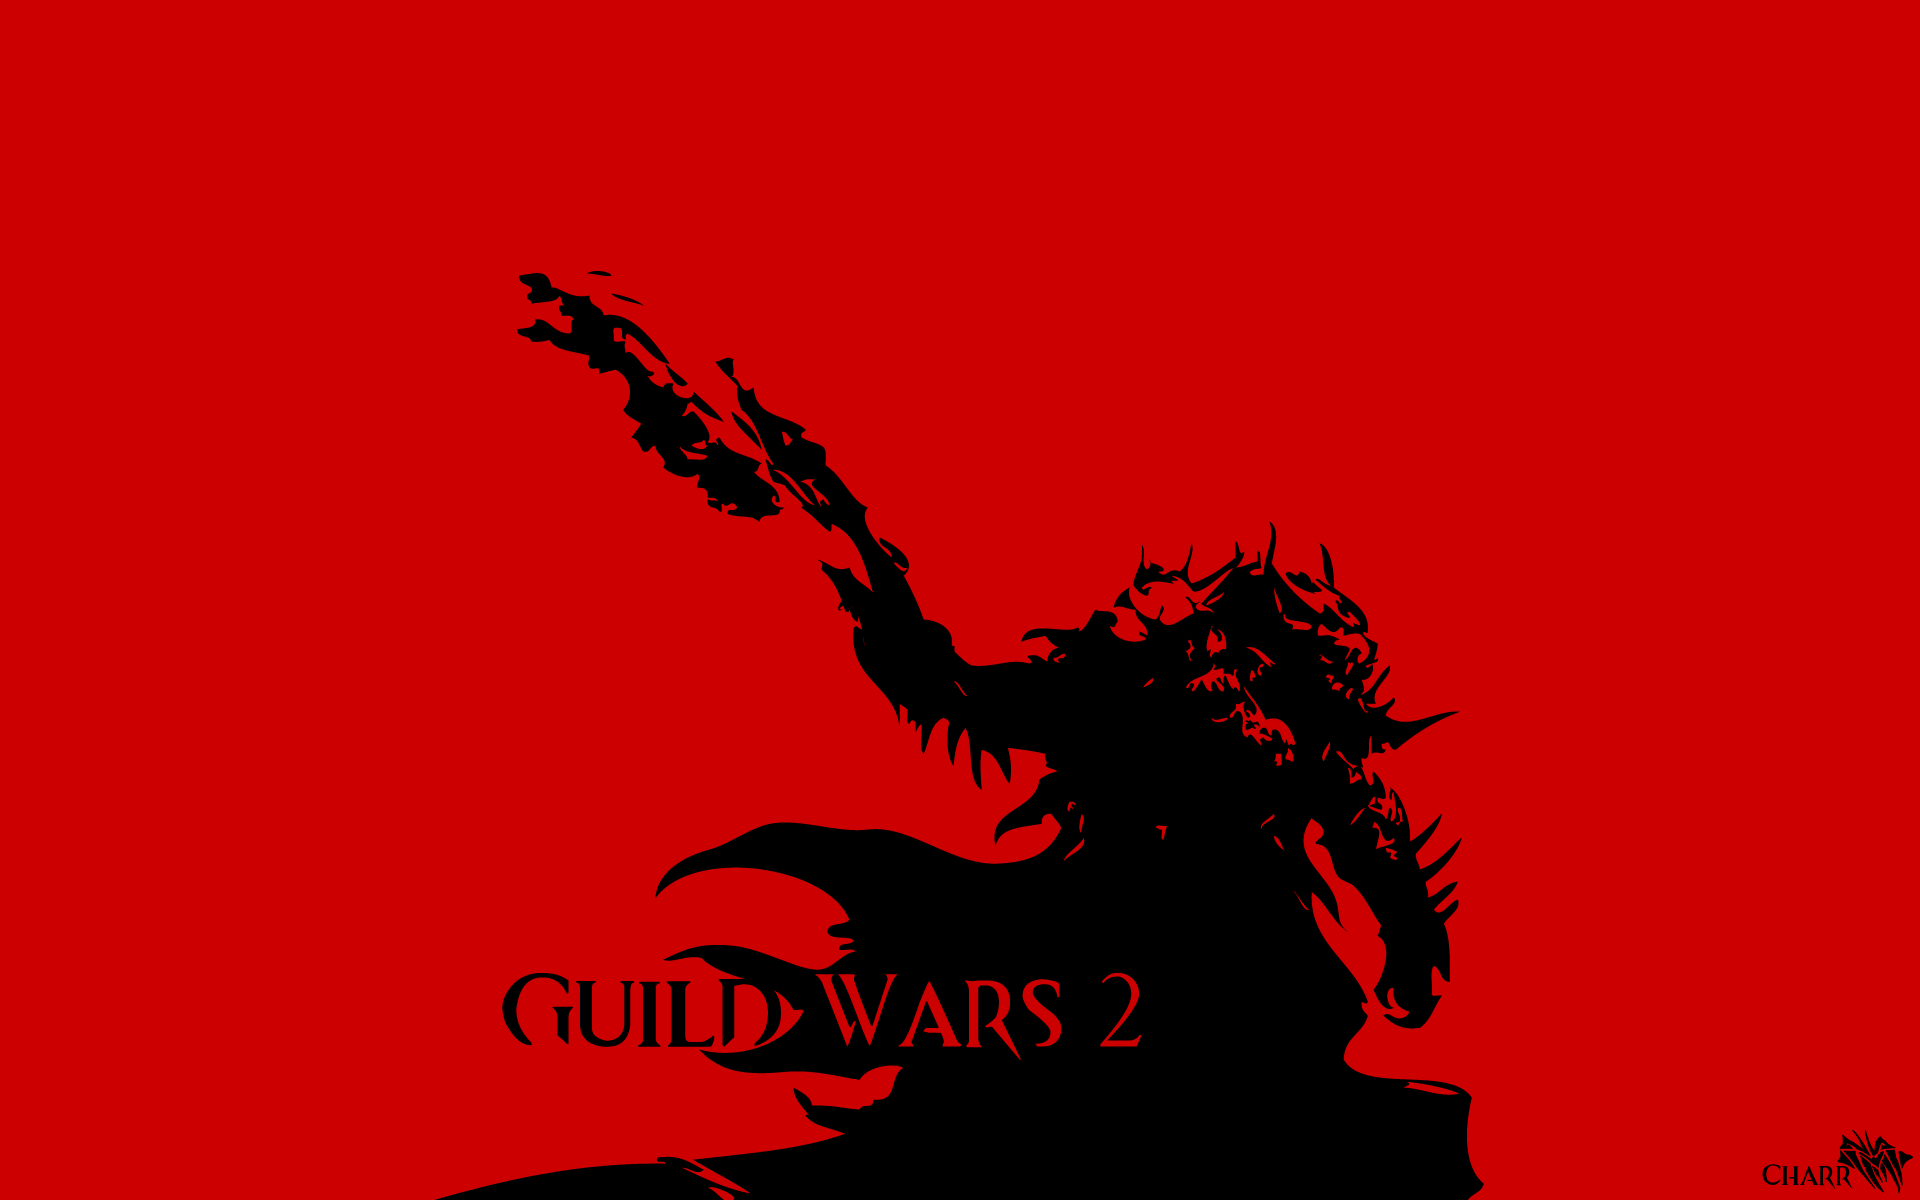 Guild Wars 2 Full Hd Wallpaper And Background Image: Guild Wars 2 Full HD Wallpaper And Background